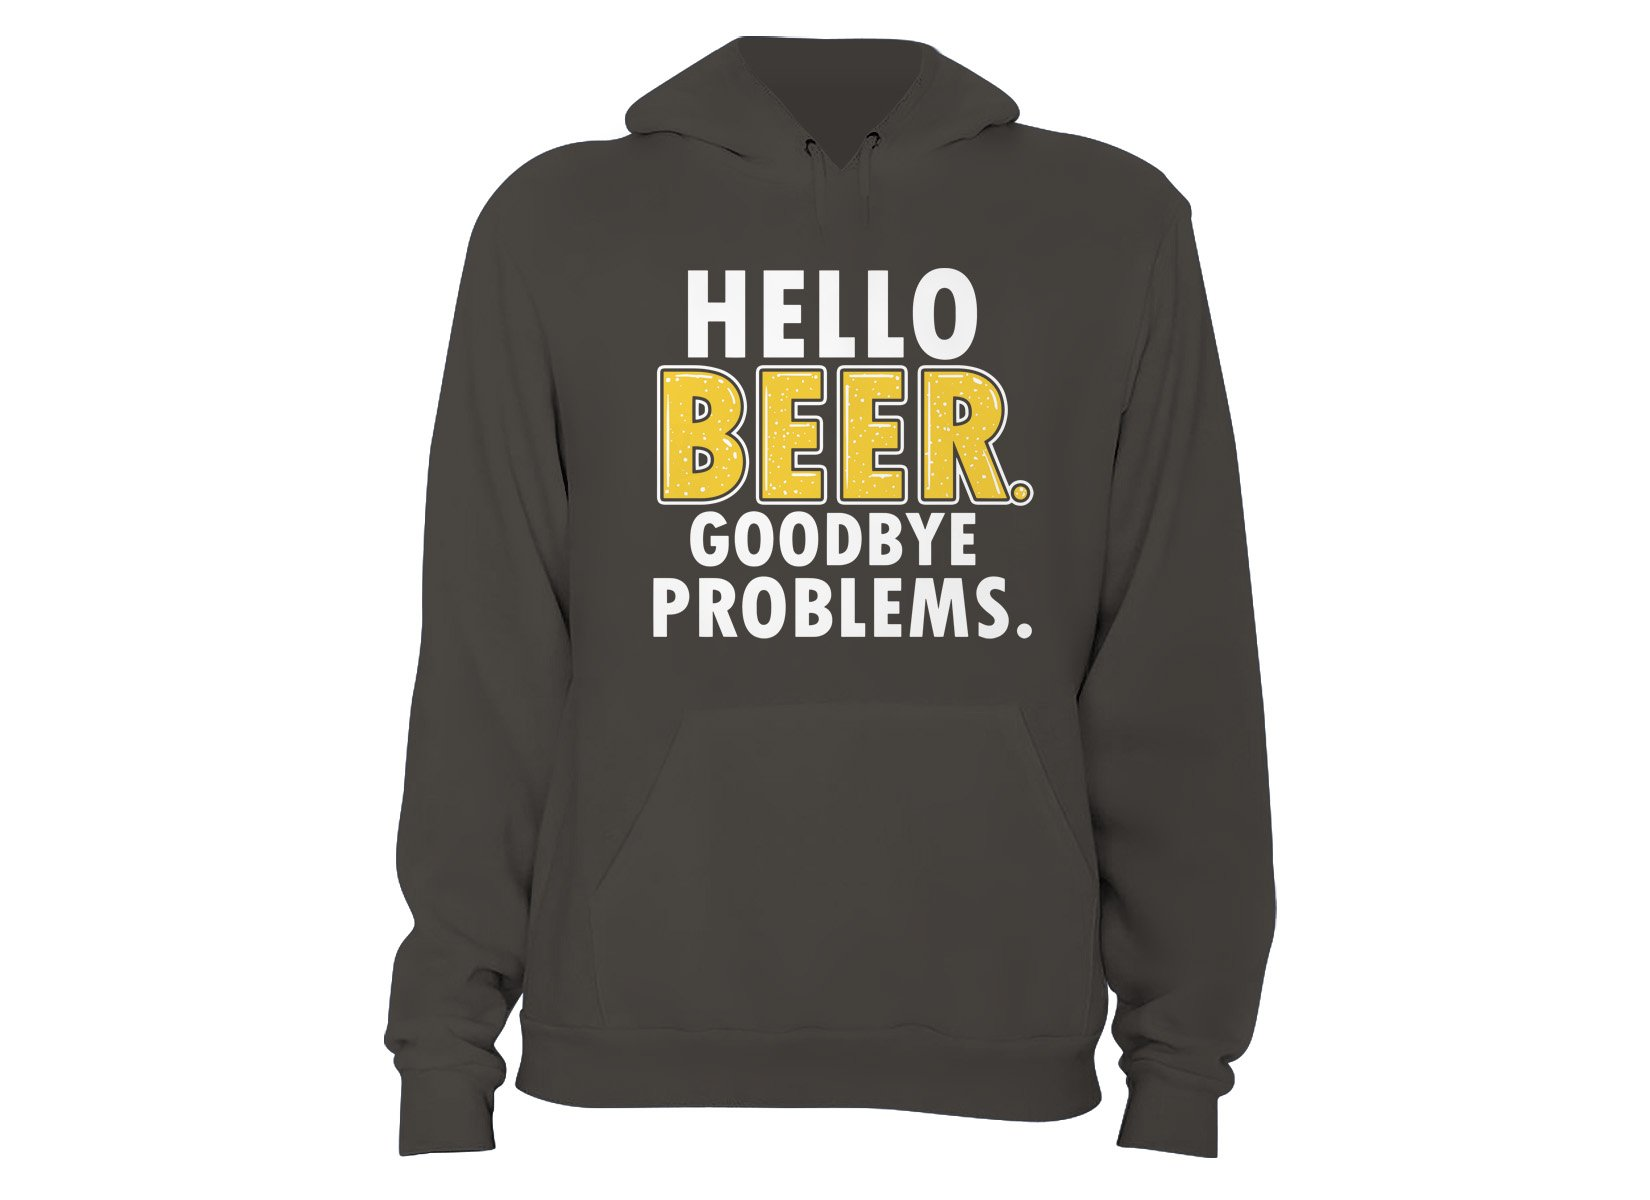 Hello Beer. Goodbye Problems. on Hoodie